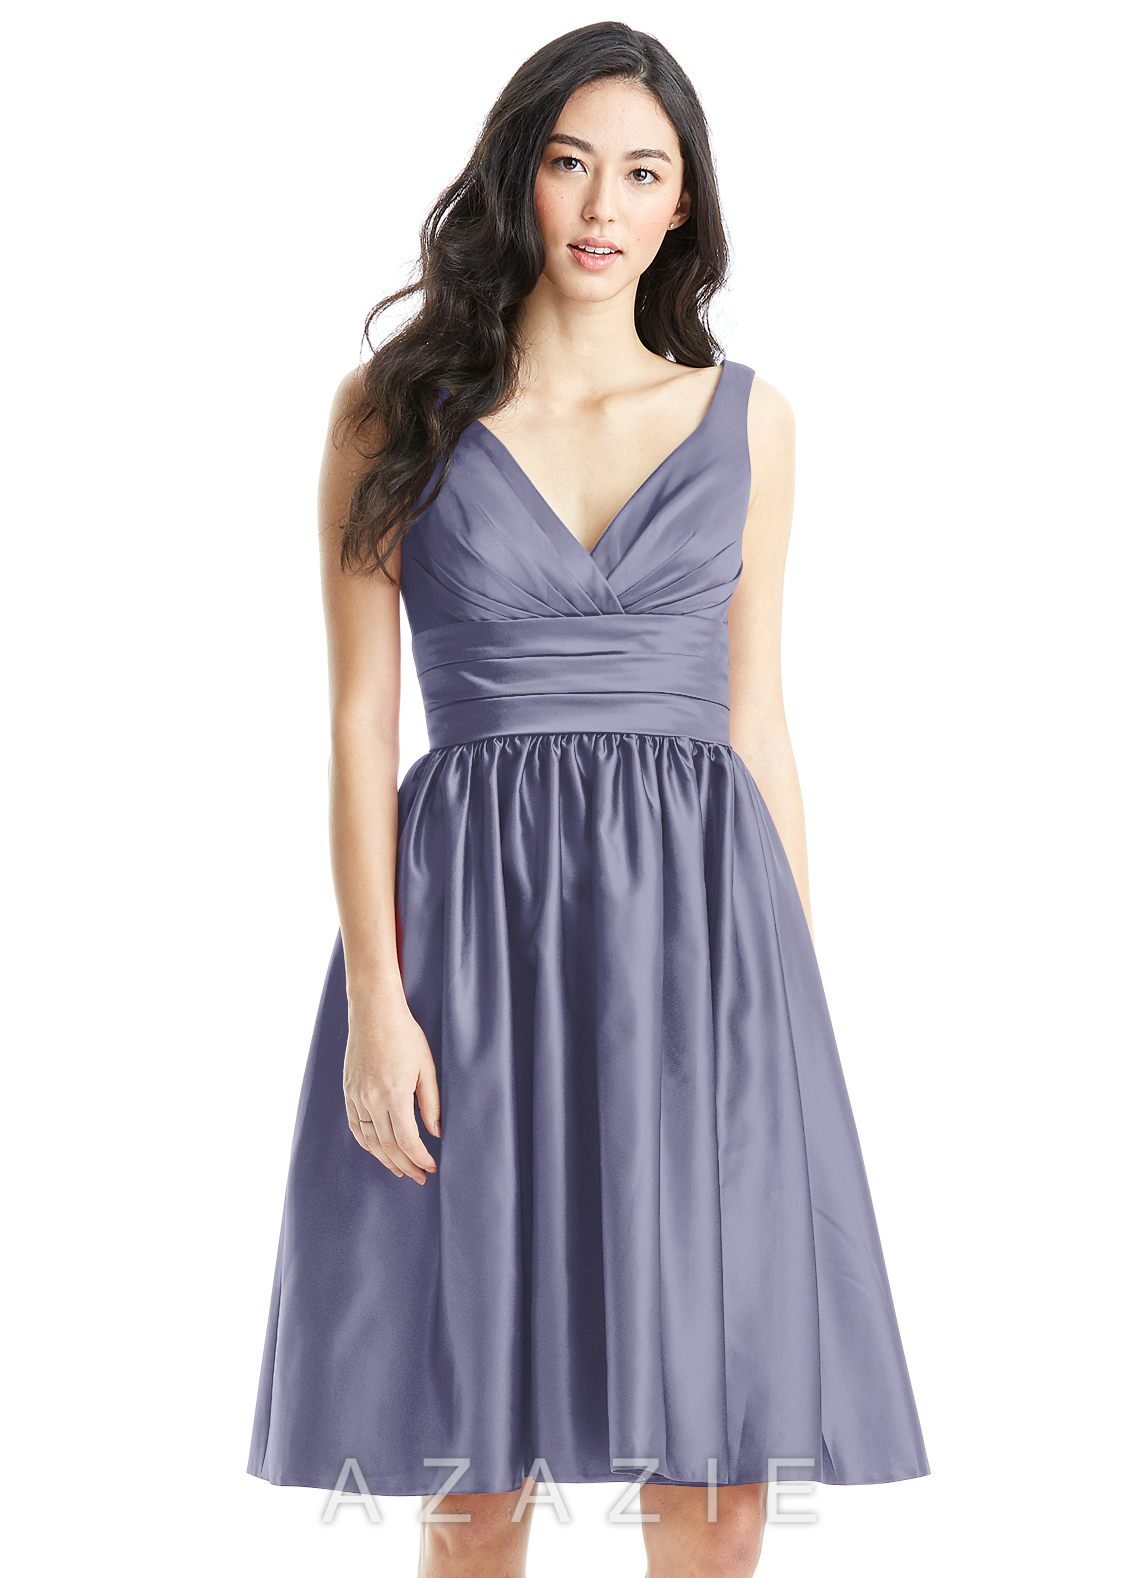 Get Chic Bridesmaid Dresses Under $100